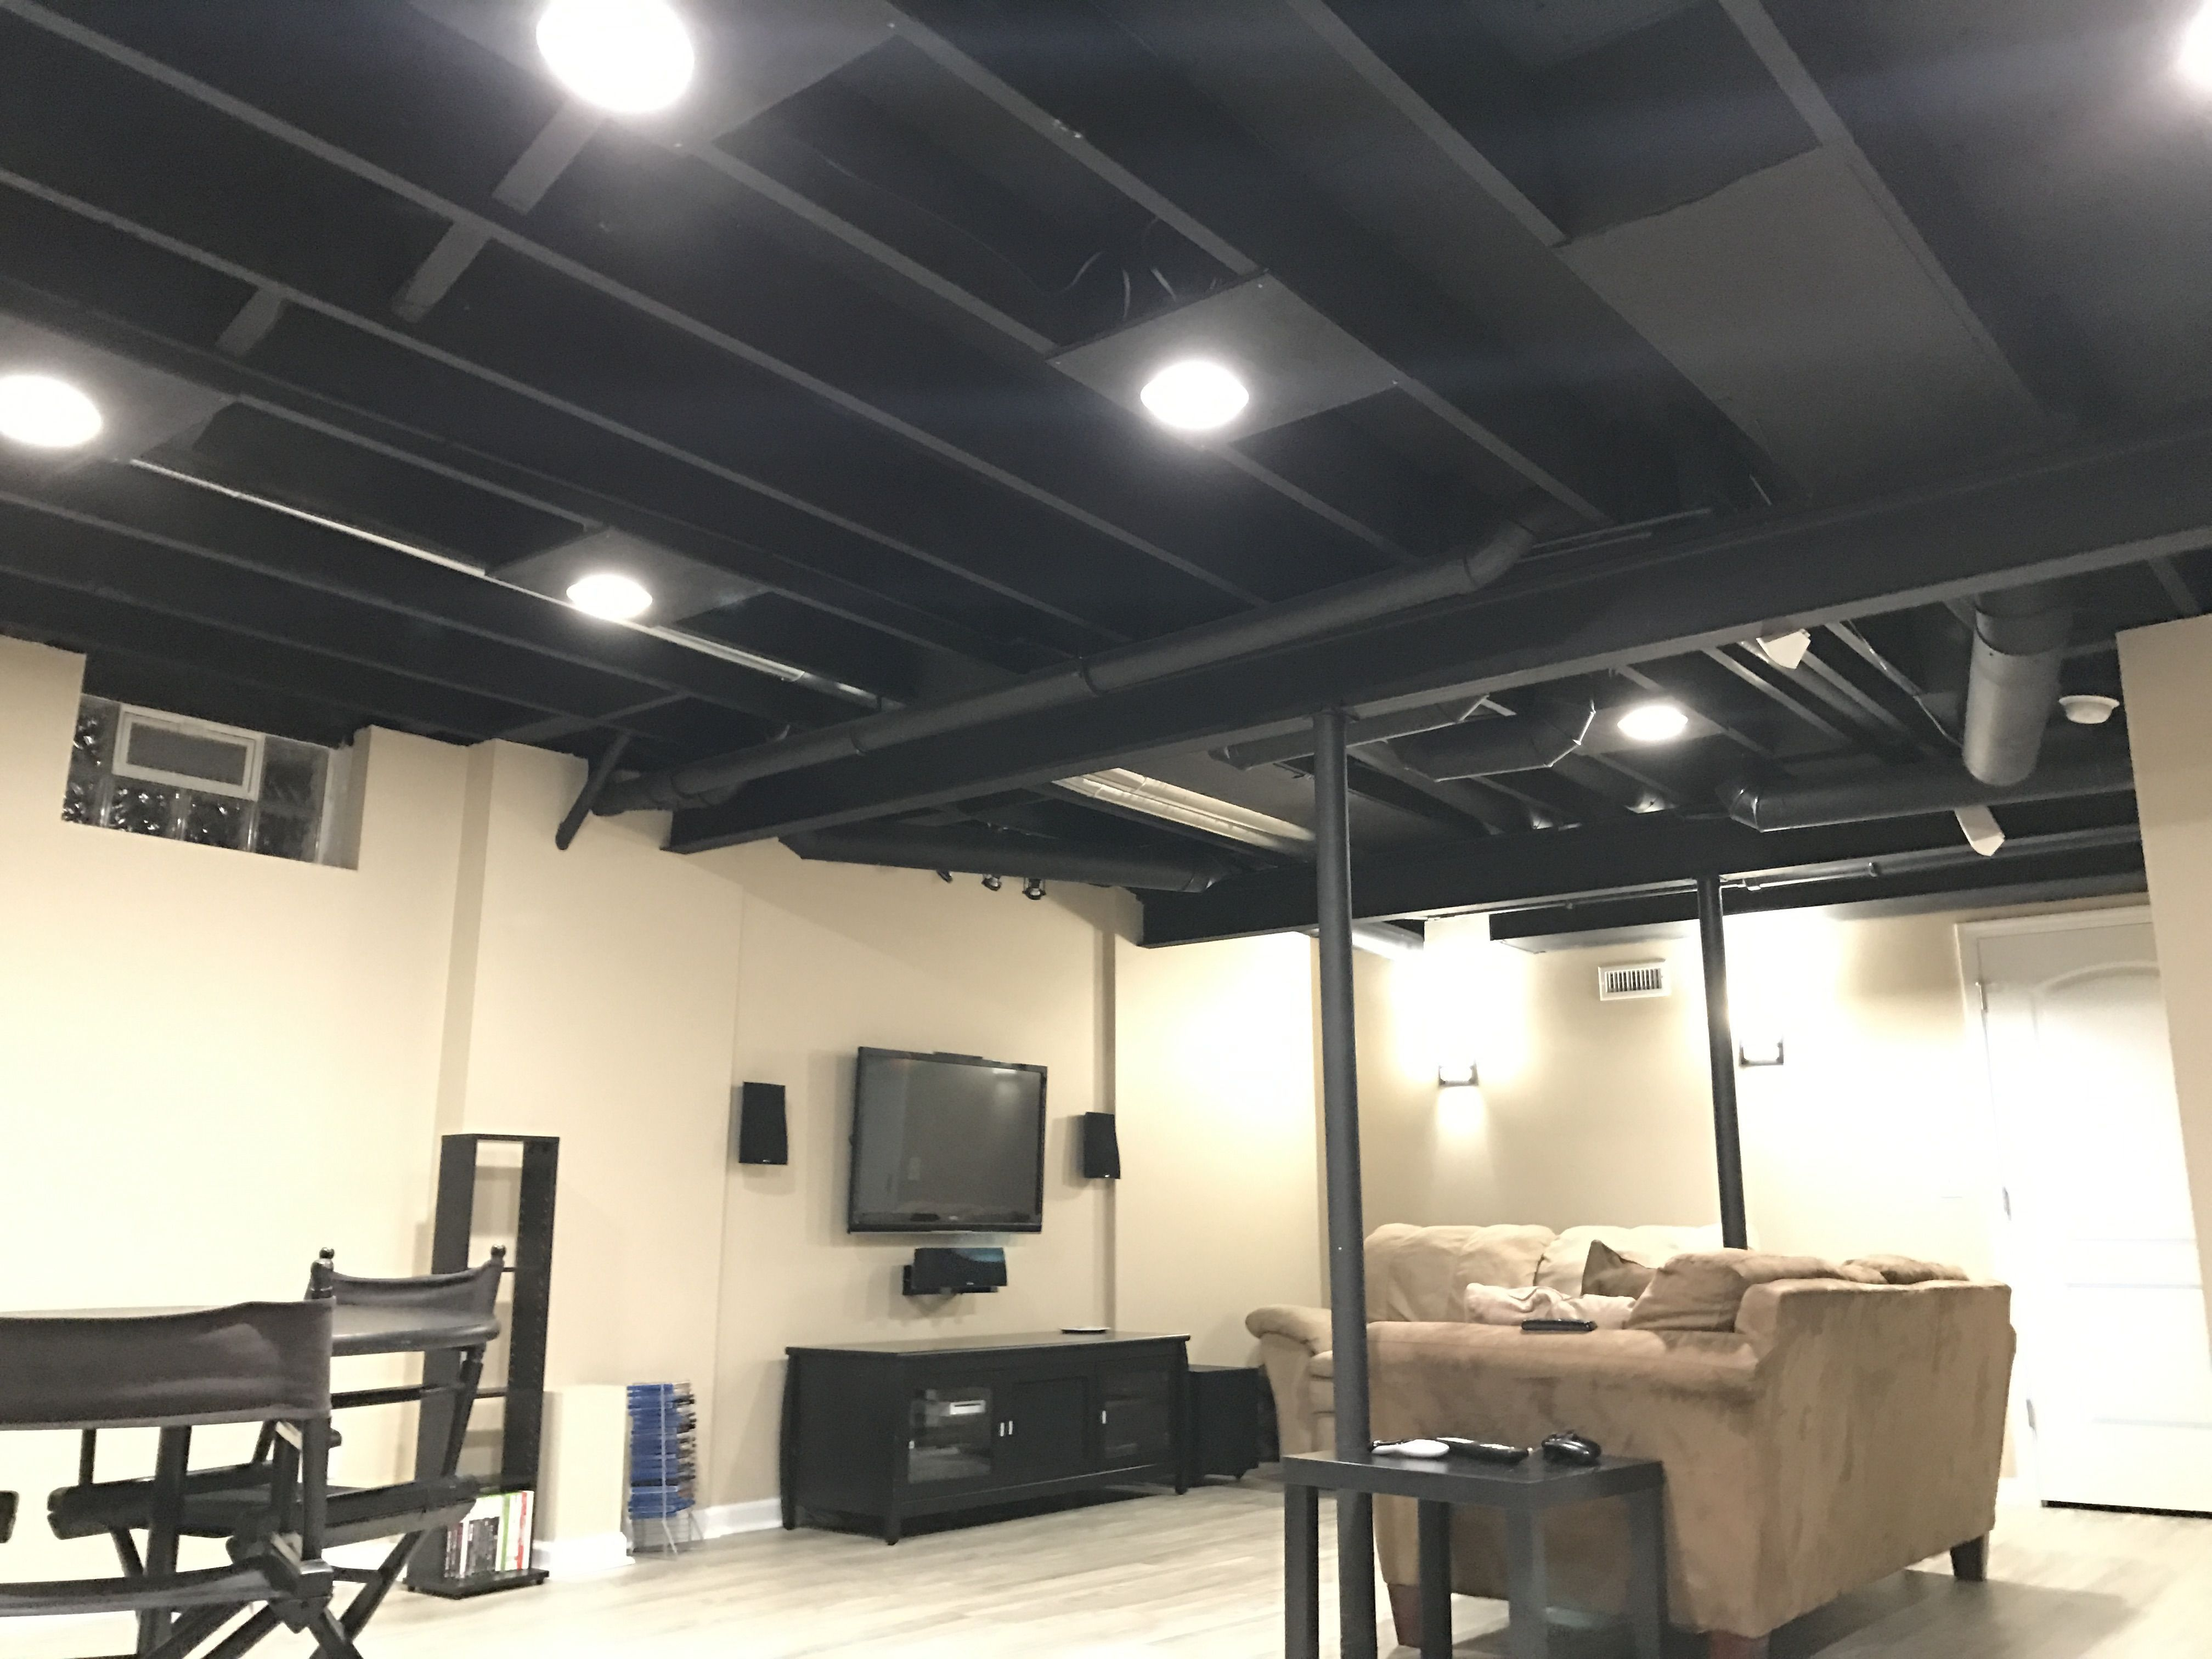 20 Stunning Basement Ceiling Ideas Are Completely